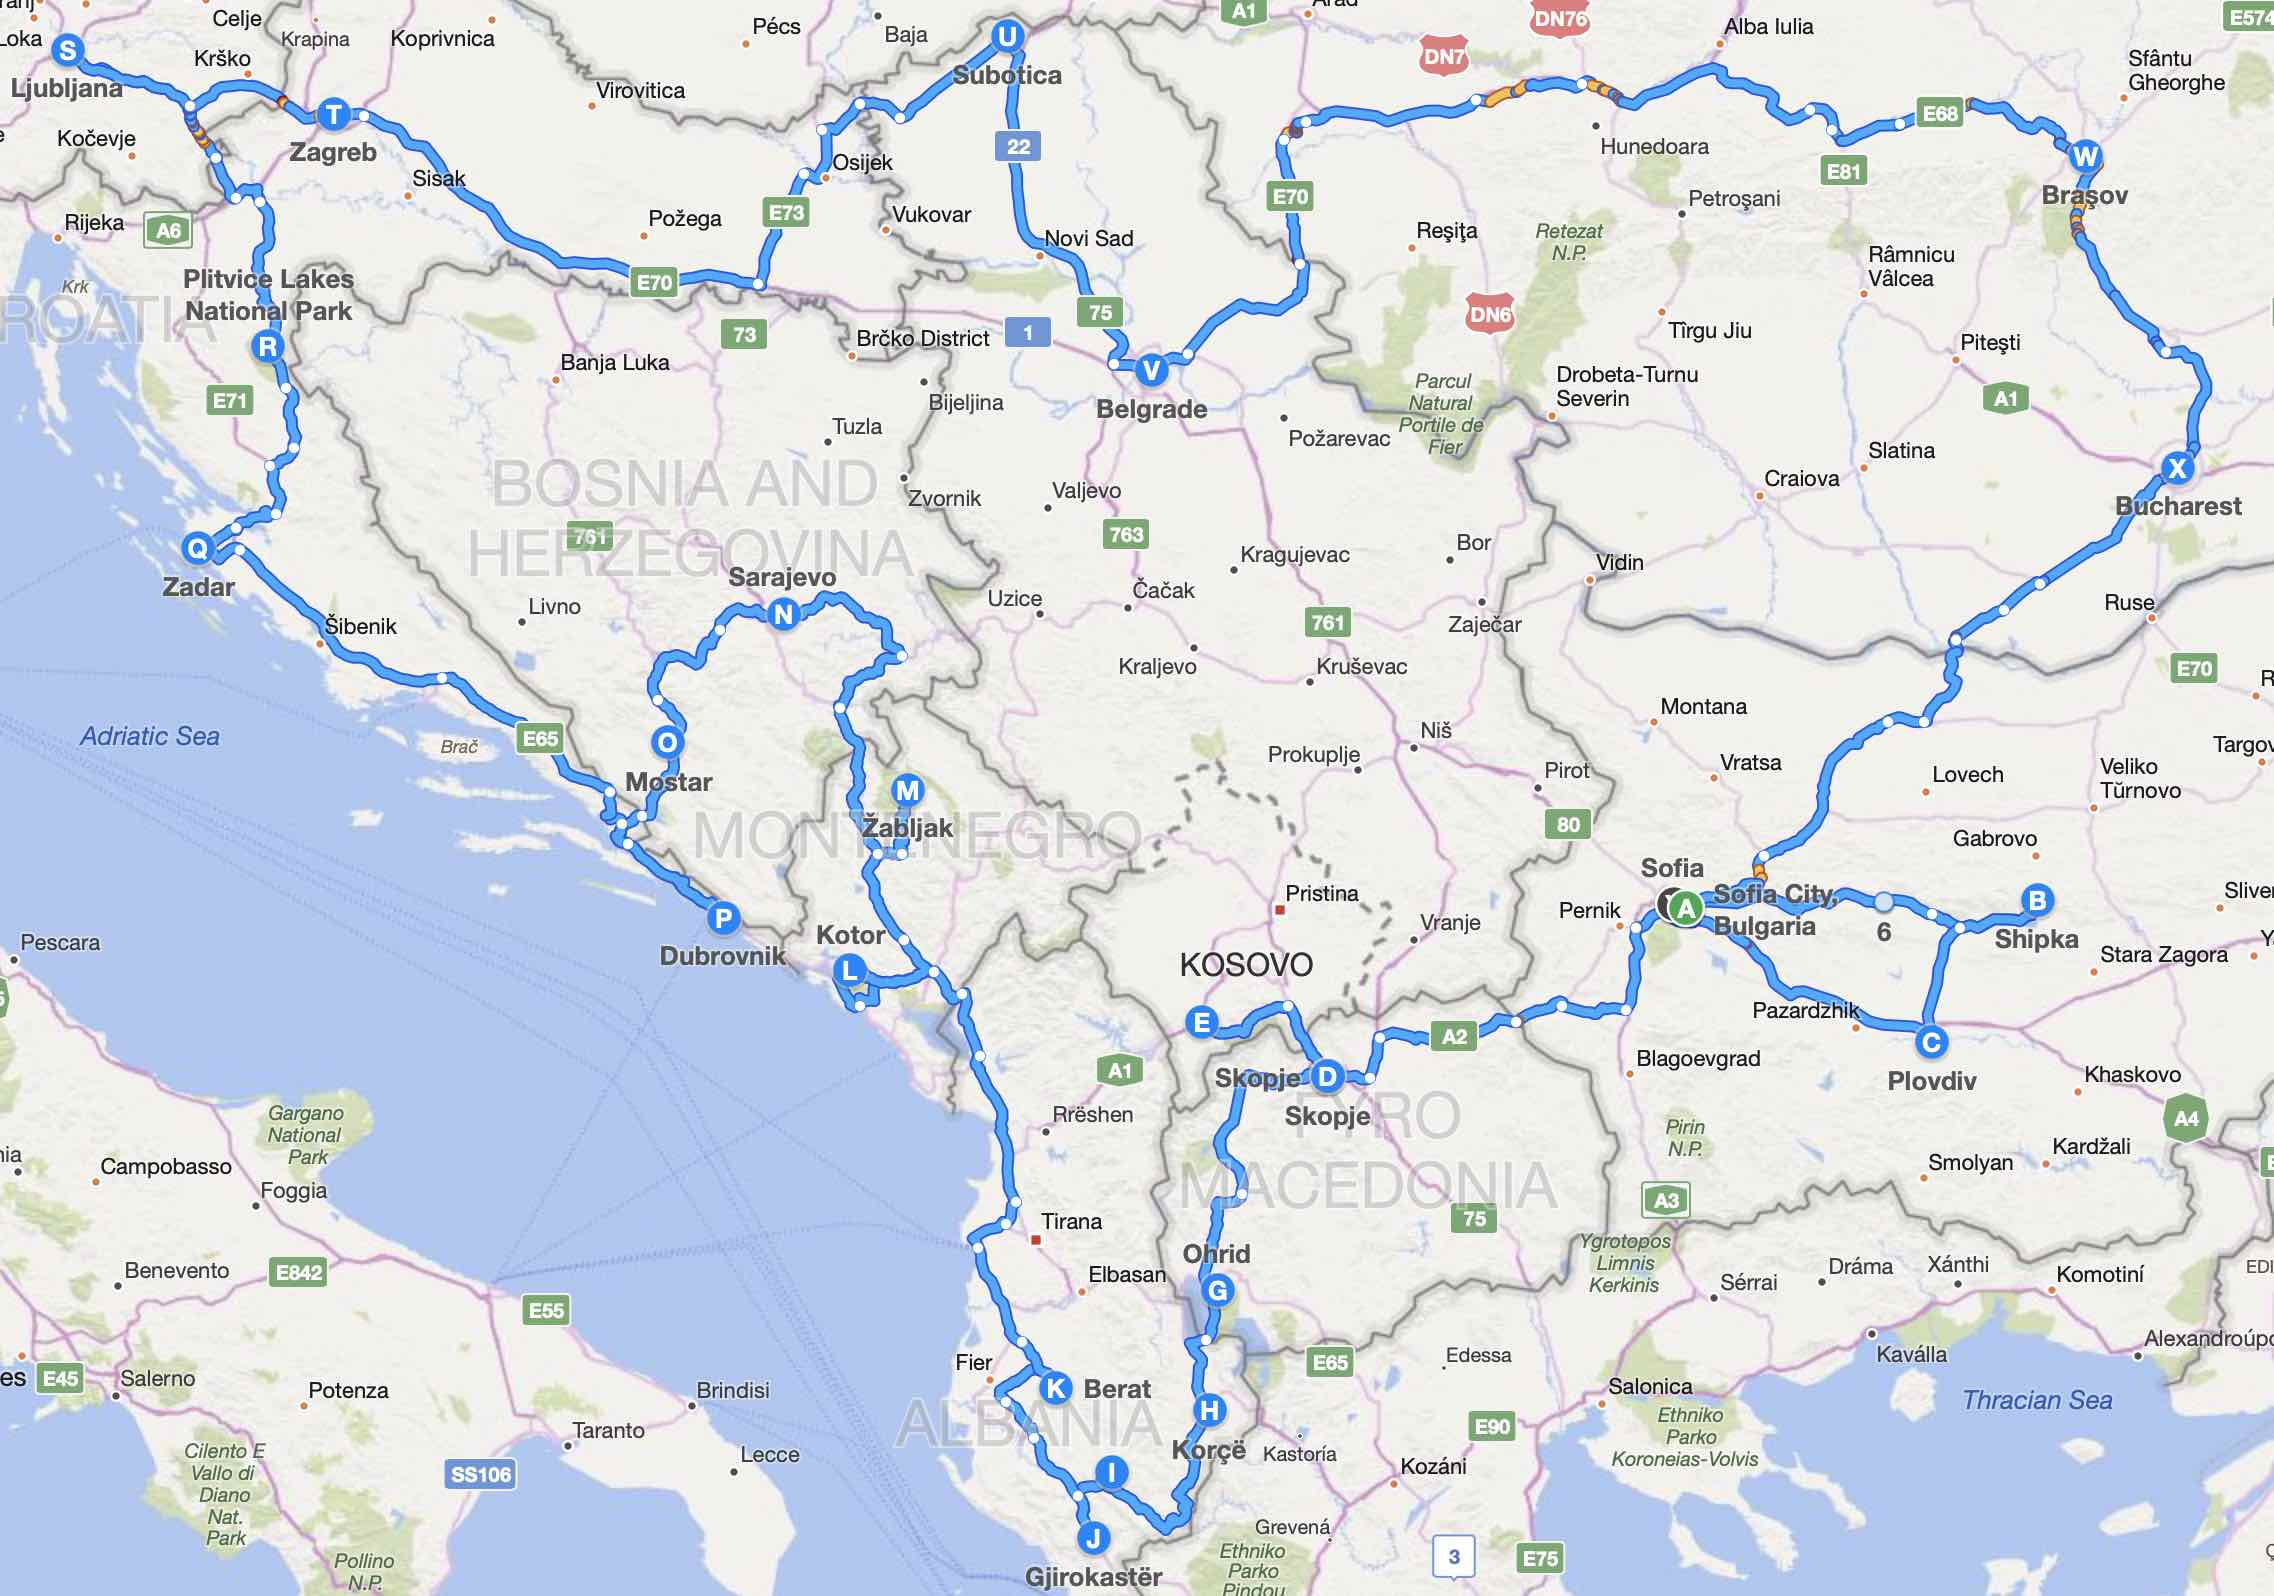 Balkans Roadtrip Route